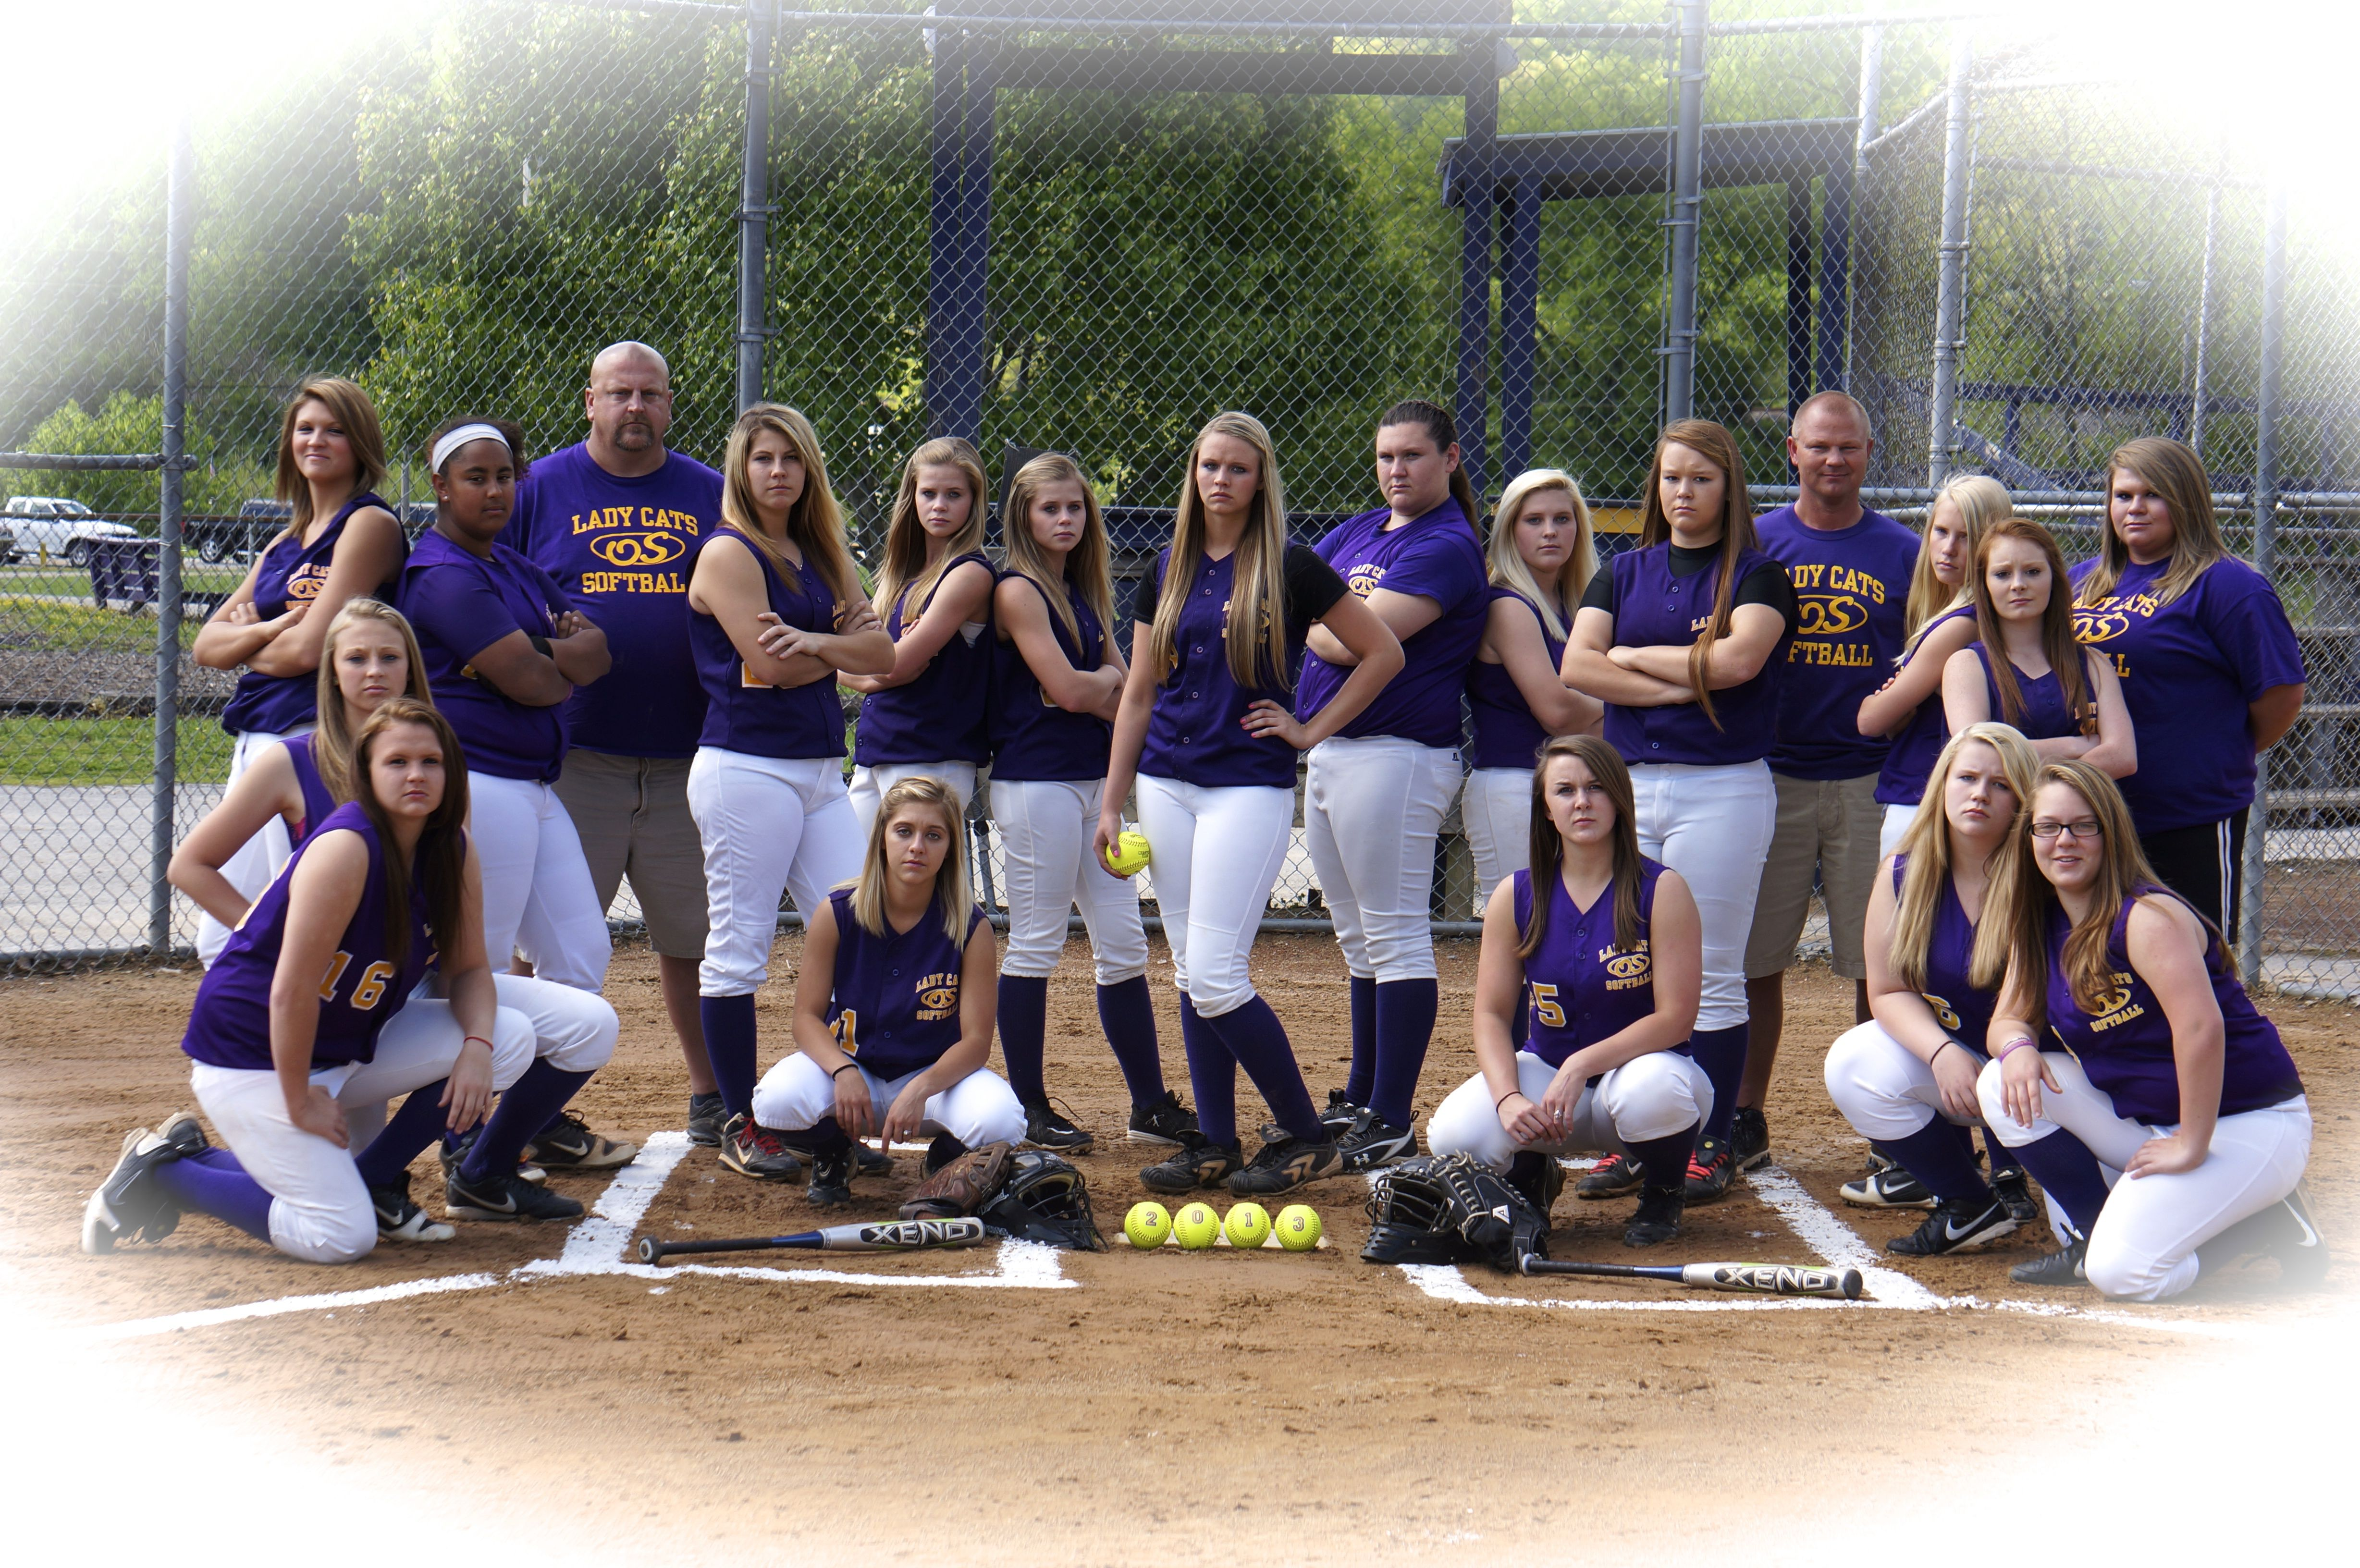 Pin By Tammy Schindler On Photo Ideas Softball Team Pictures Softball Team Sports Team Photography